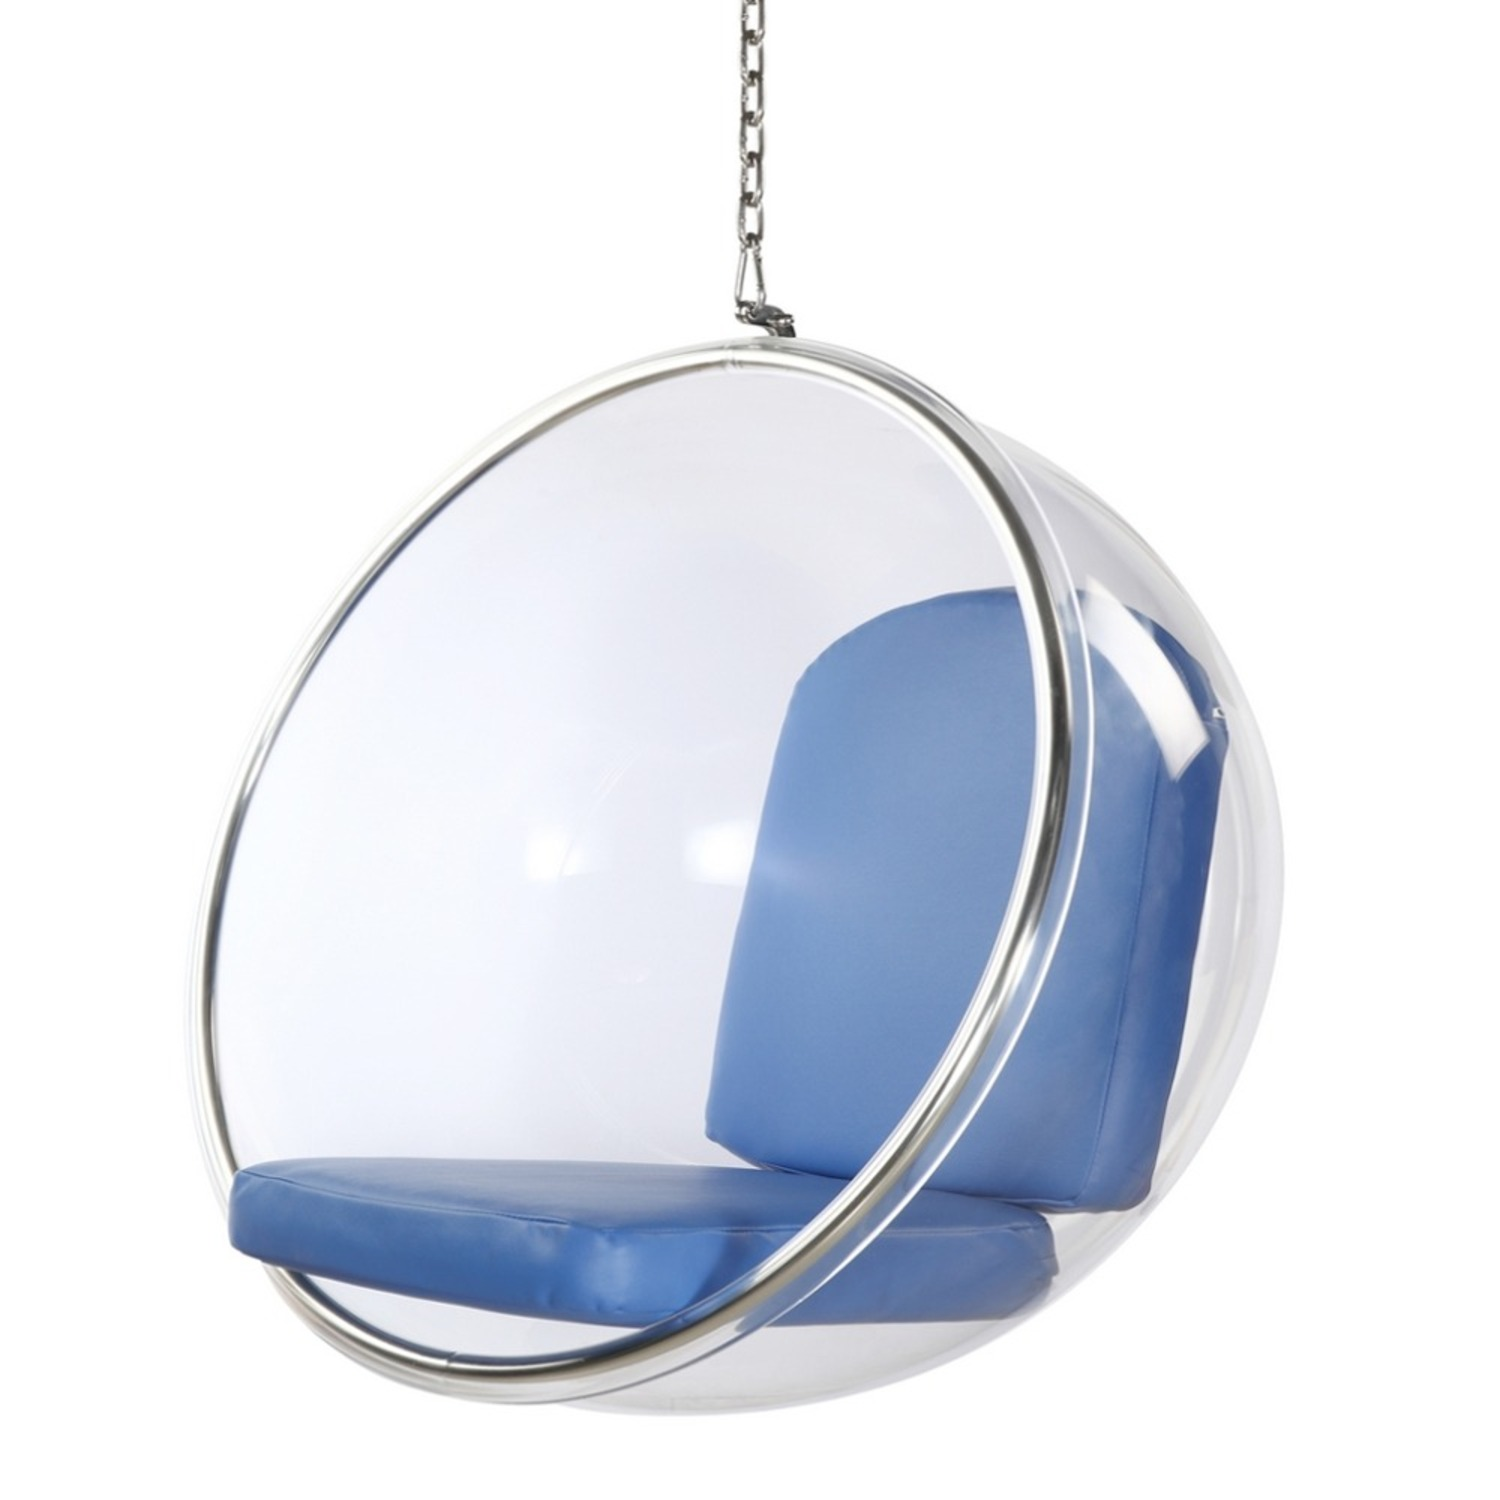 Hanging Chair In Clear Acrylic & Blue PU Leather - image-4